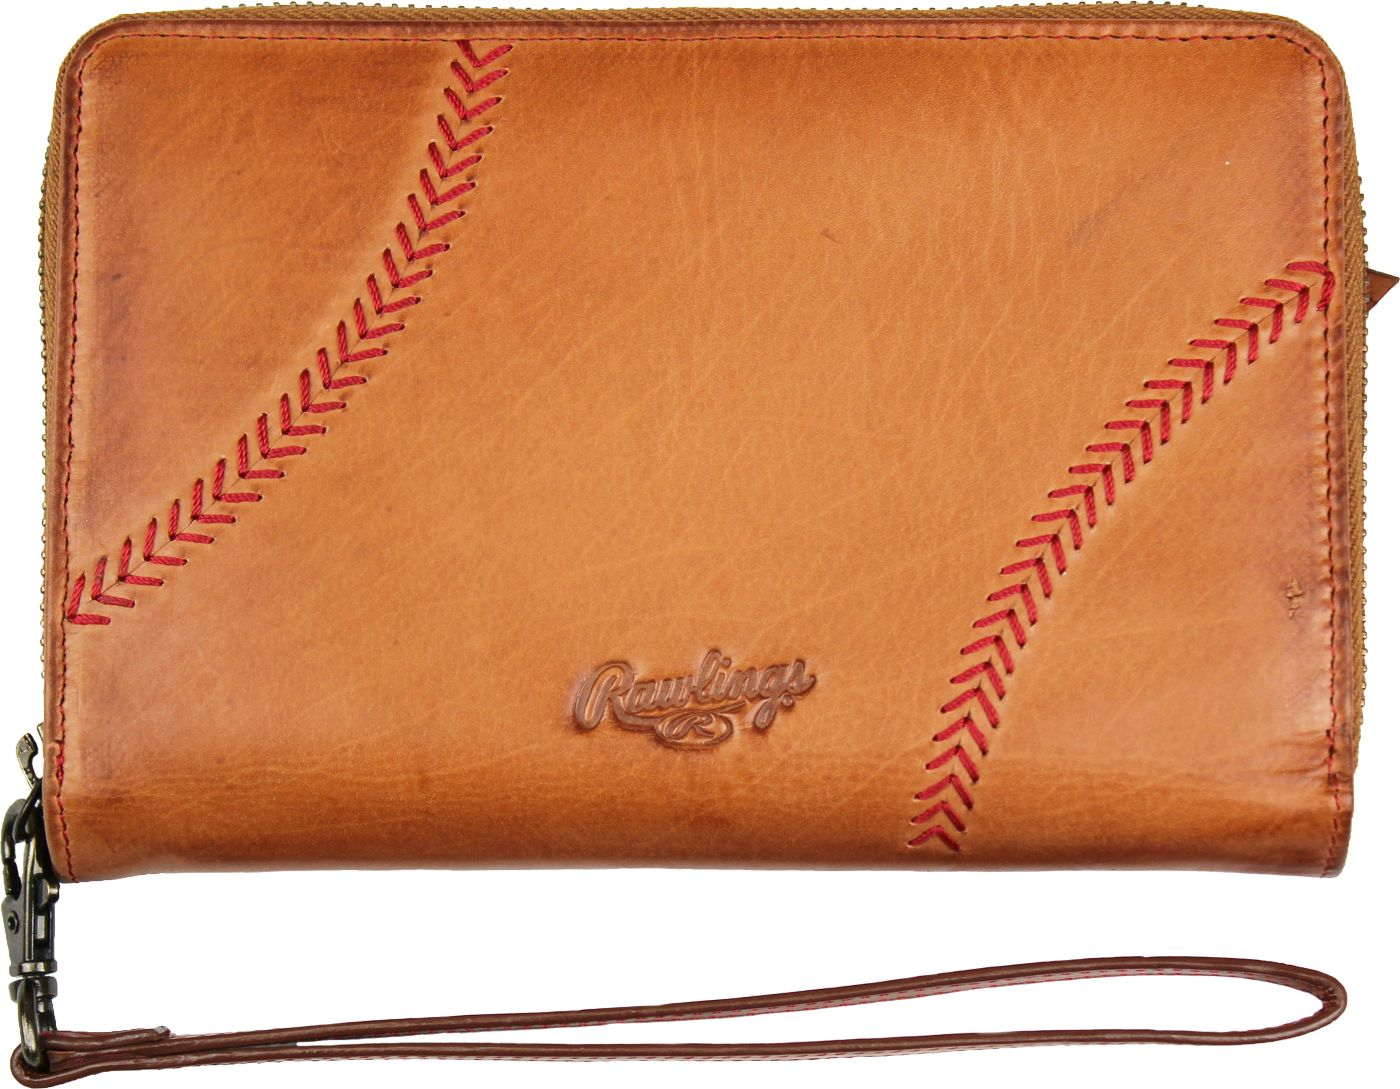 Rawlings Phone Zip Leather Wallet